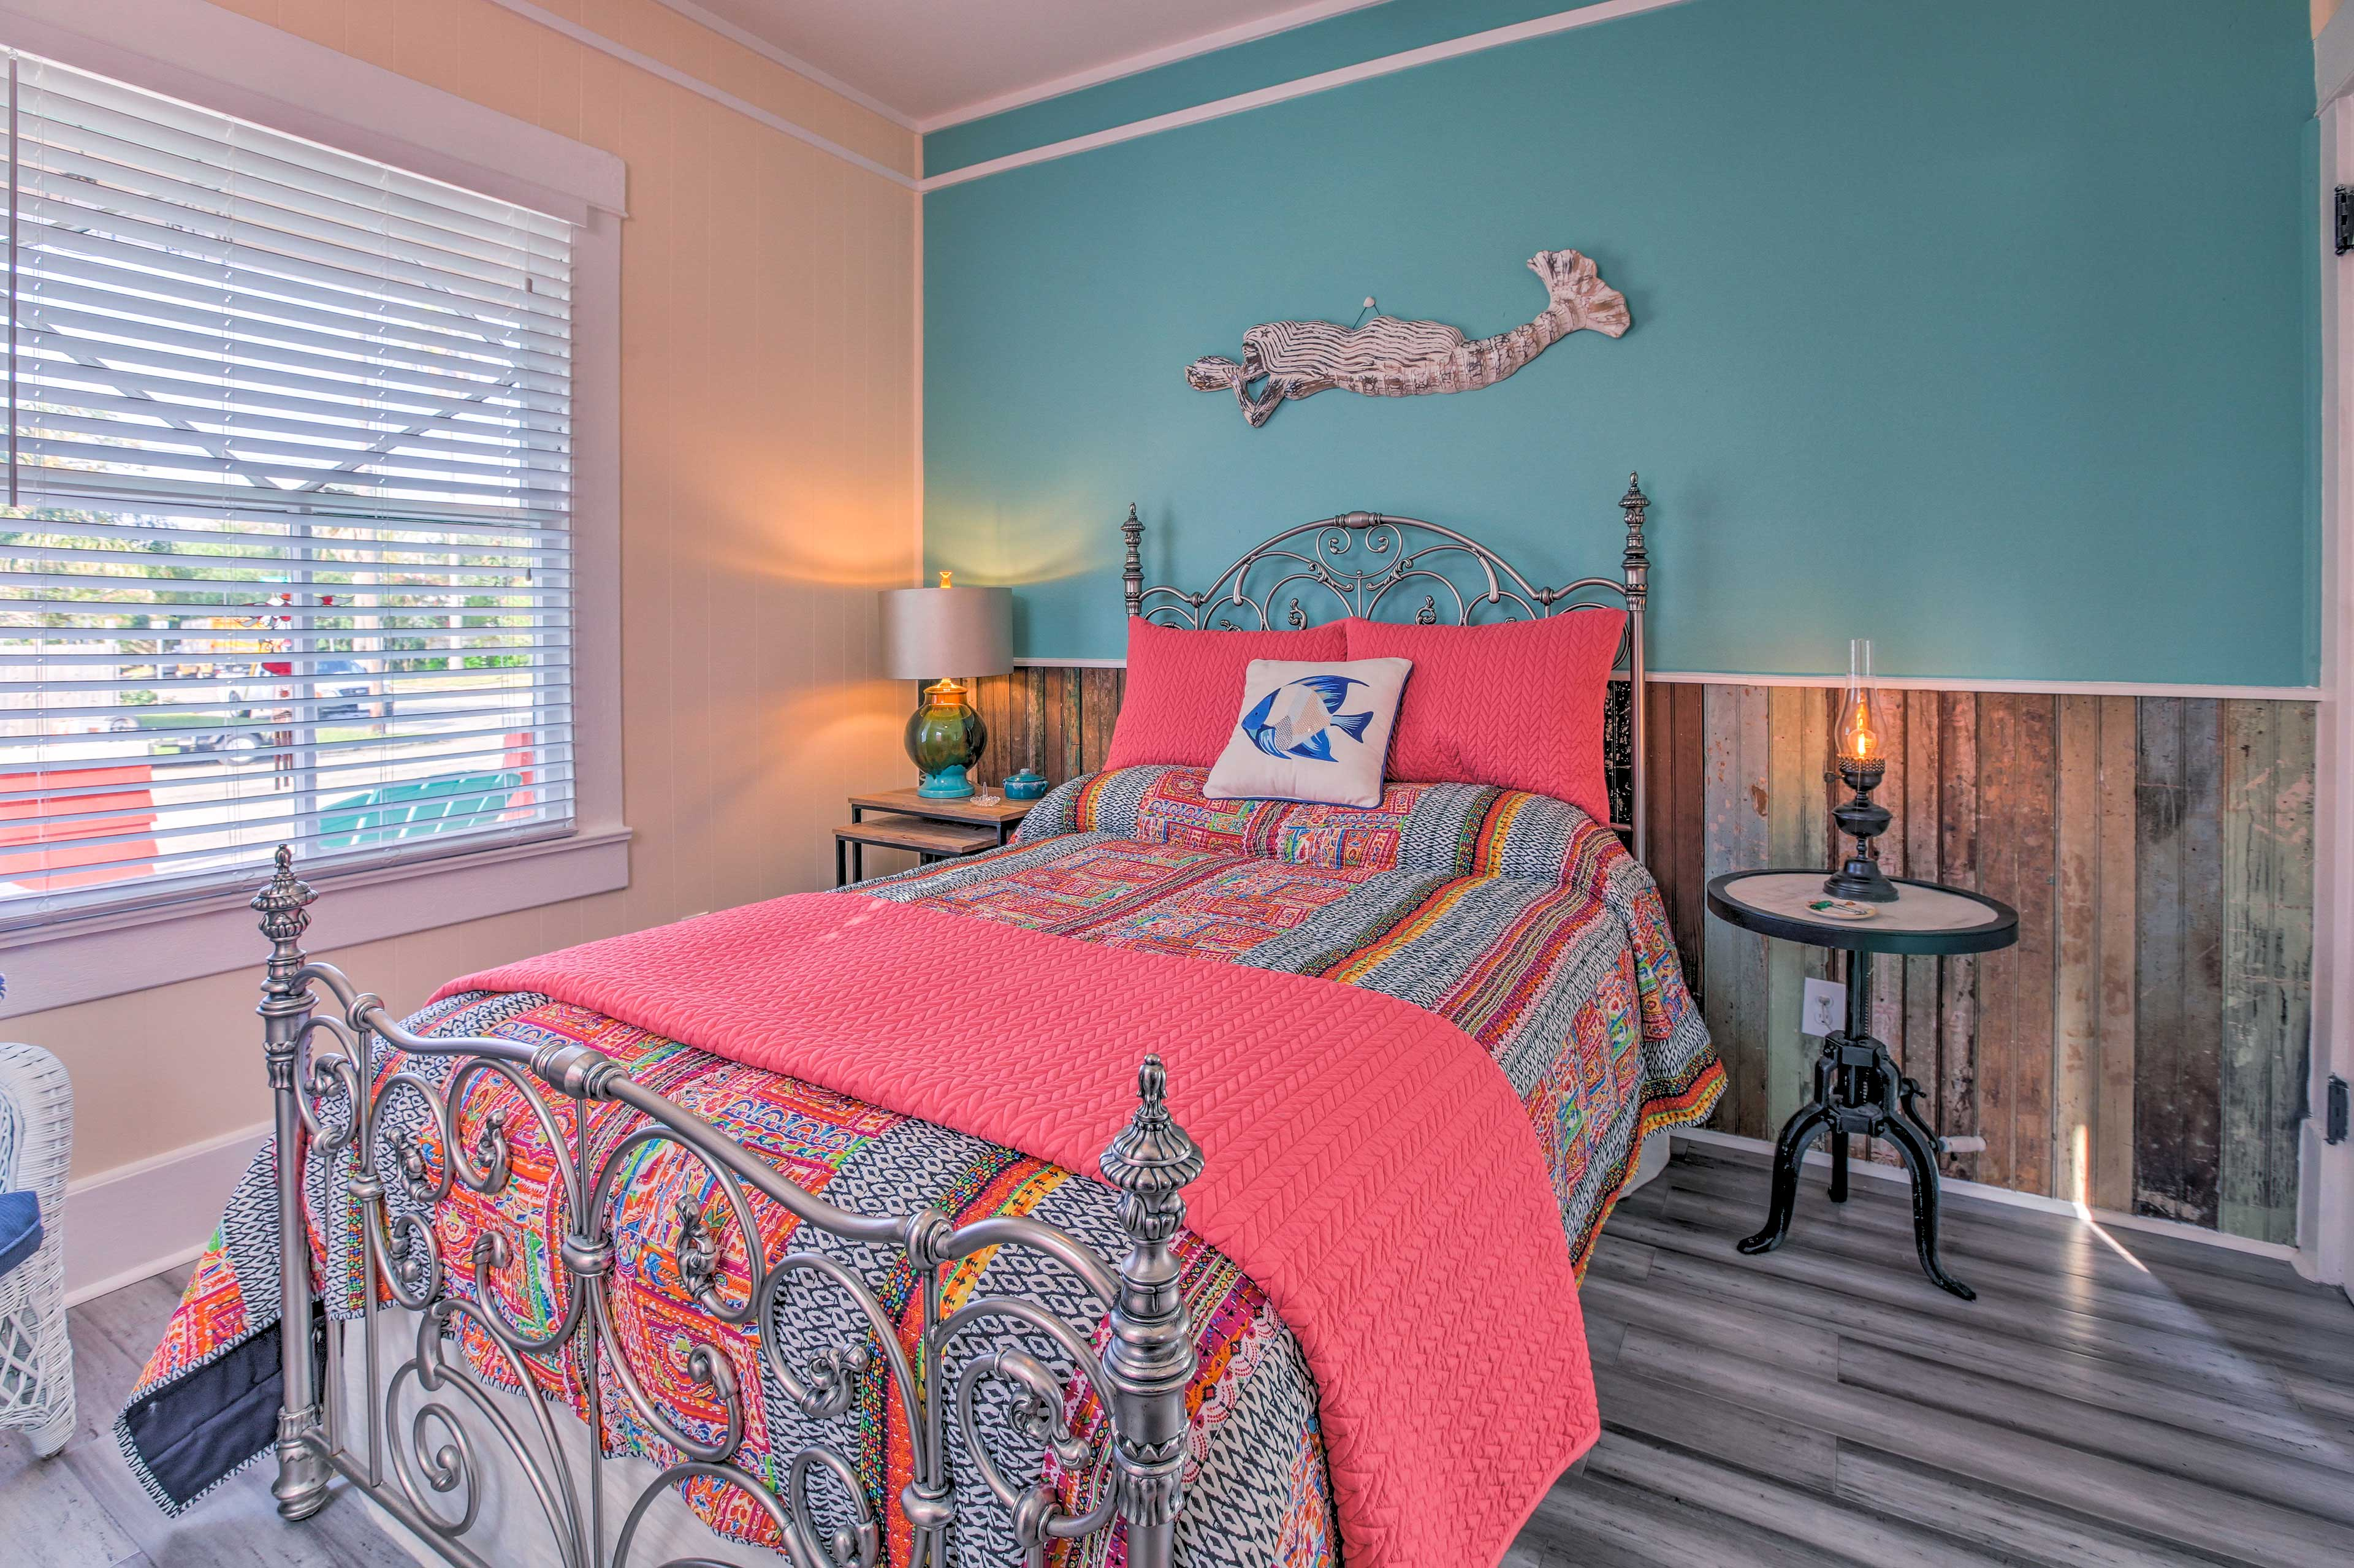 Vibrant colors invite you into the second bedroom featuring a full bed.